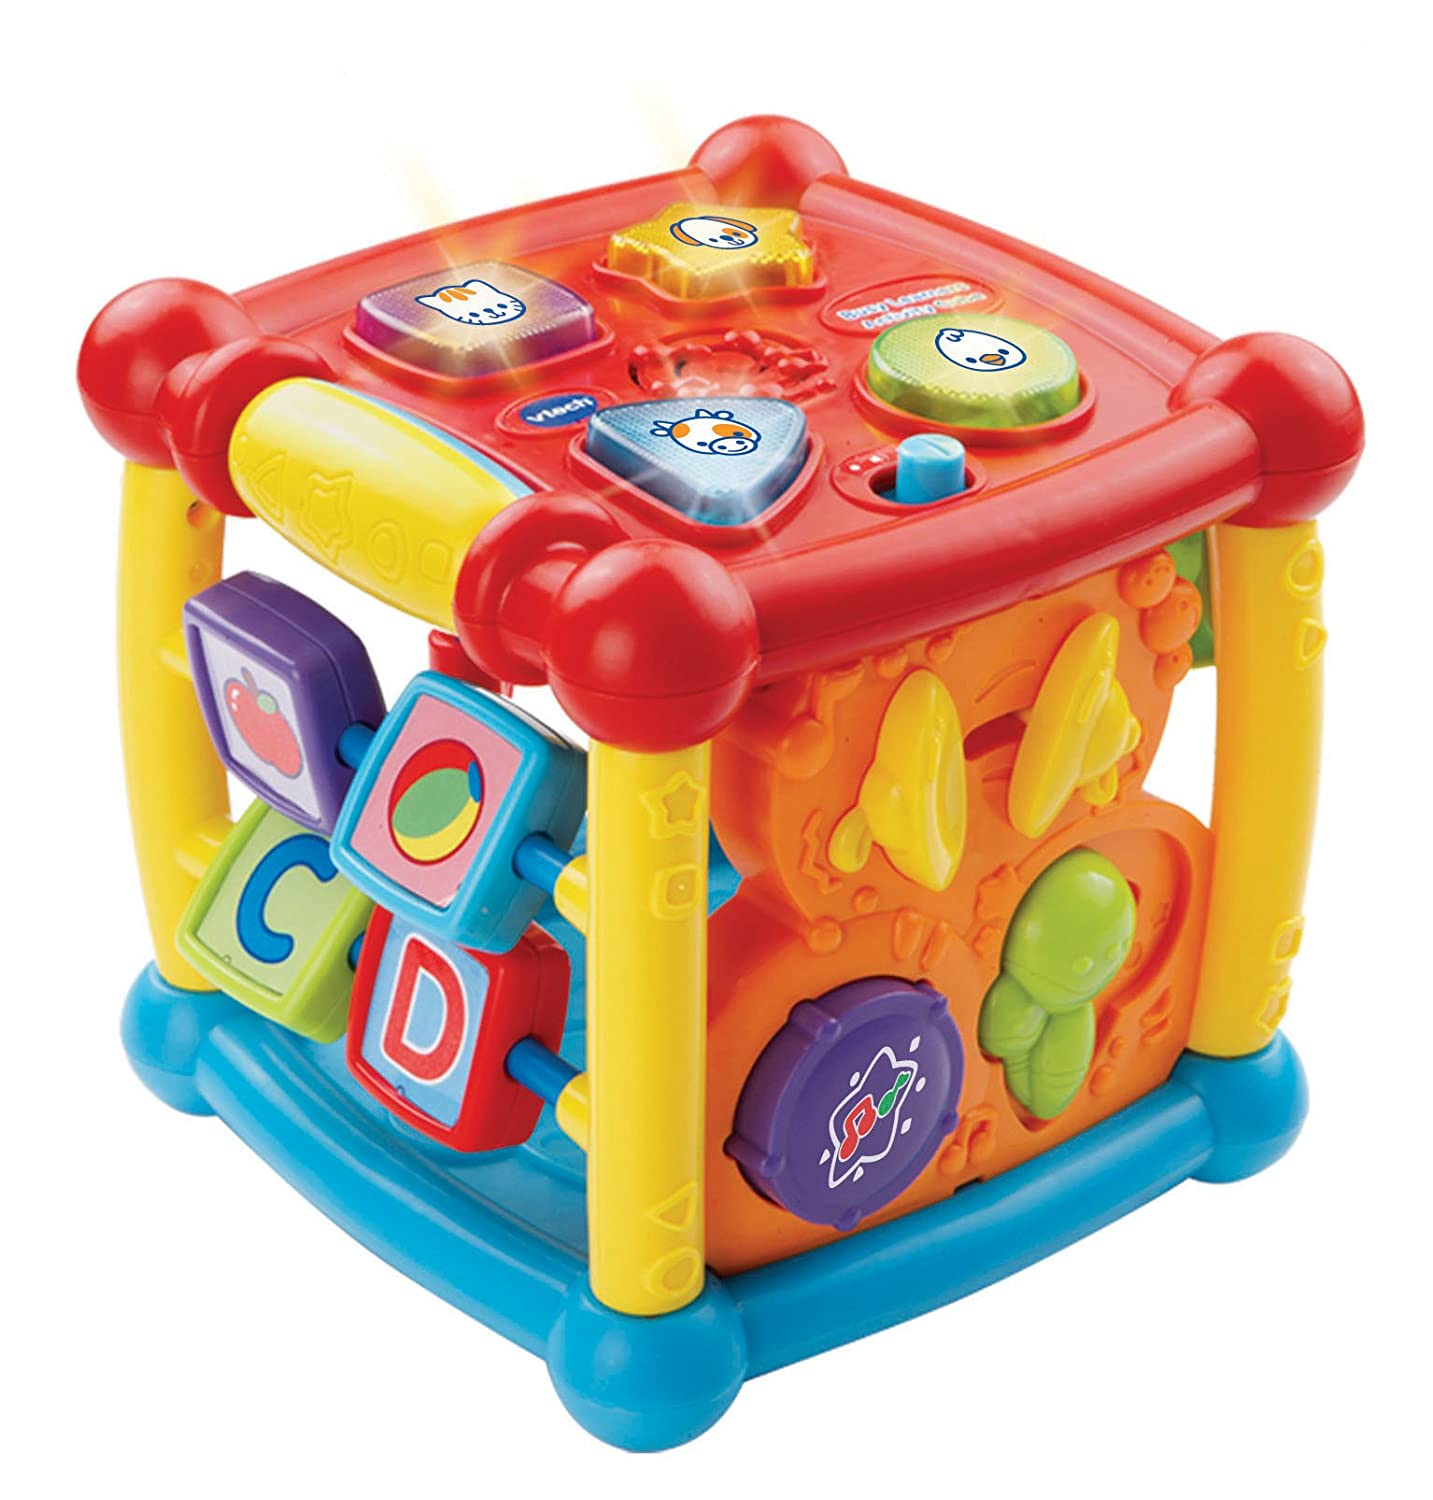 vtech baby activity center cube kids learning toys animal sounds shapes toddler. Black Bedroom Furniture Sets. Home Design Ideas